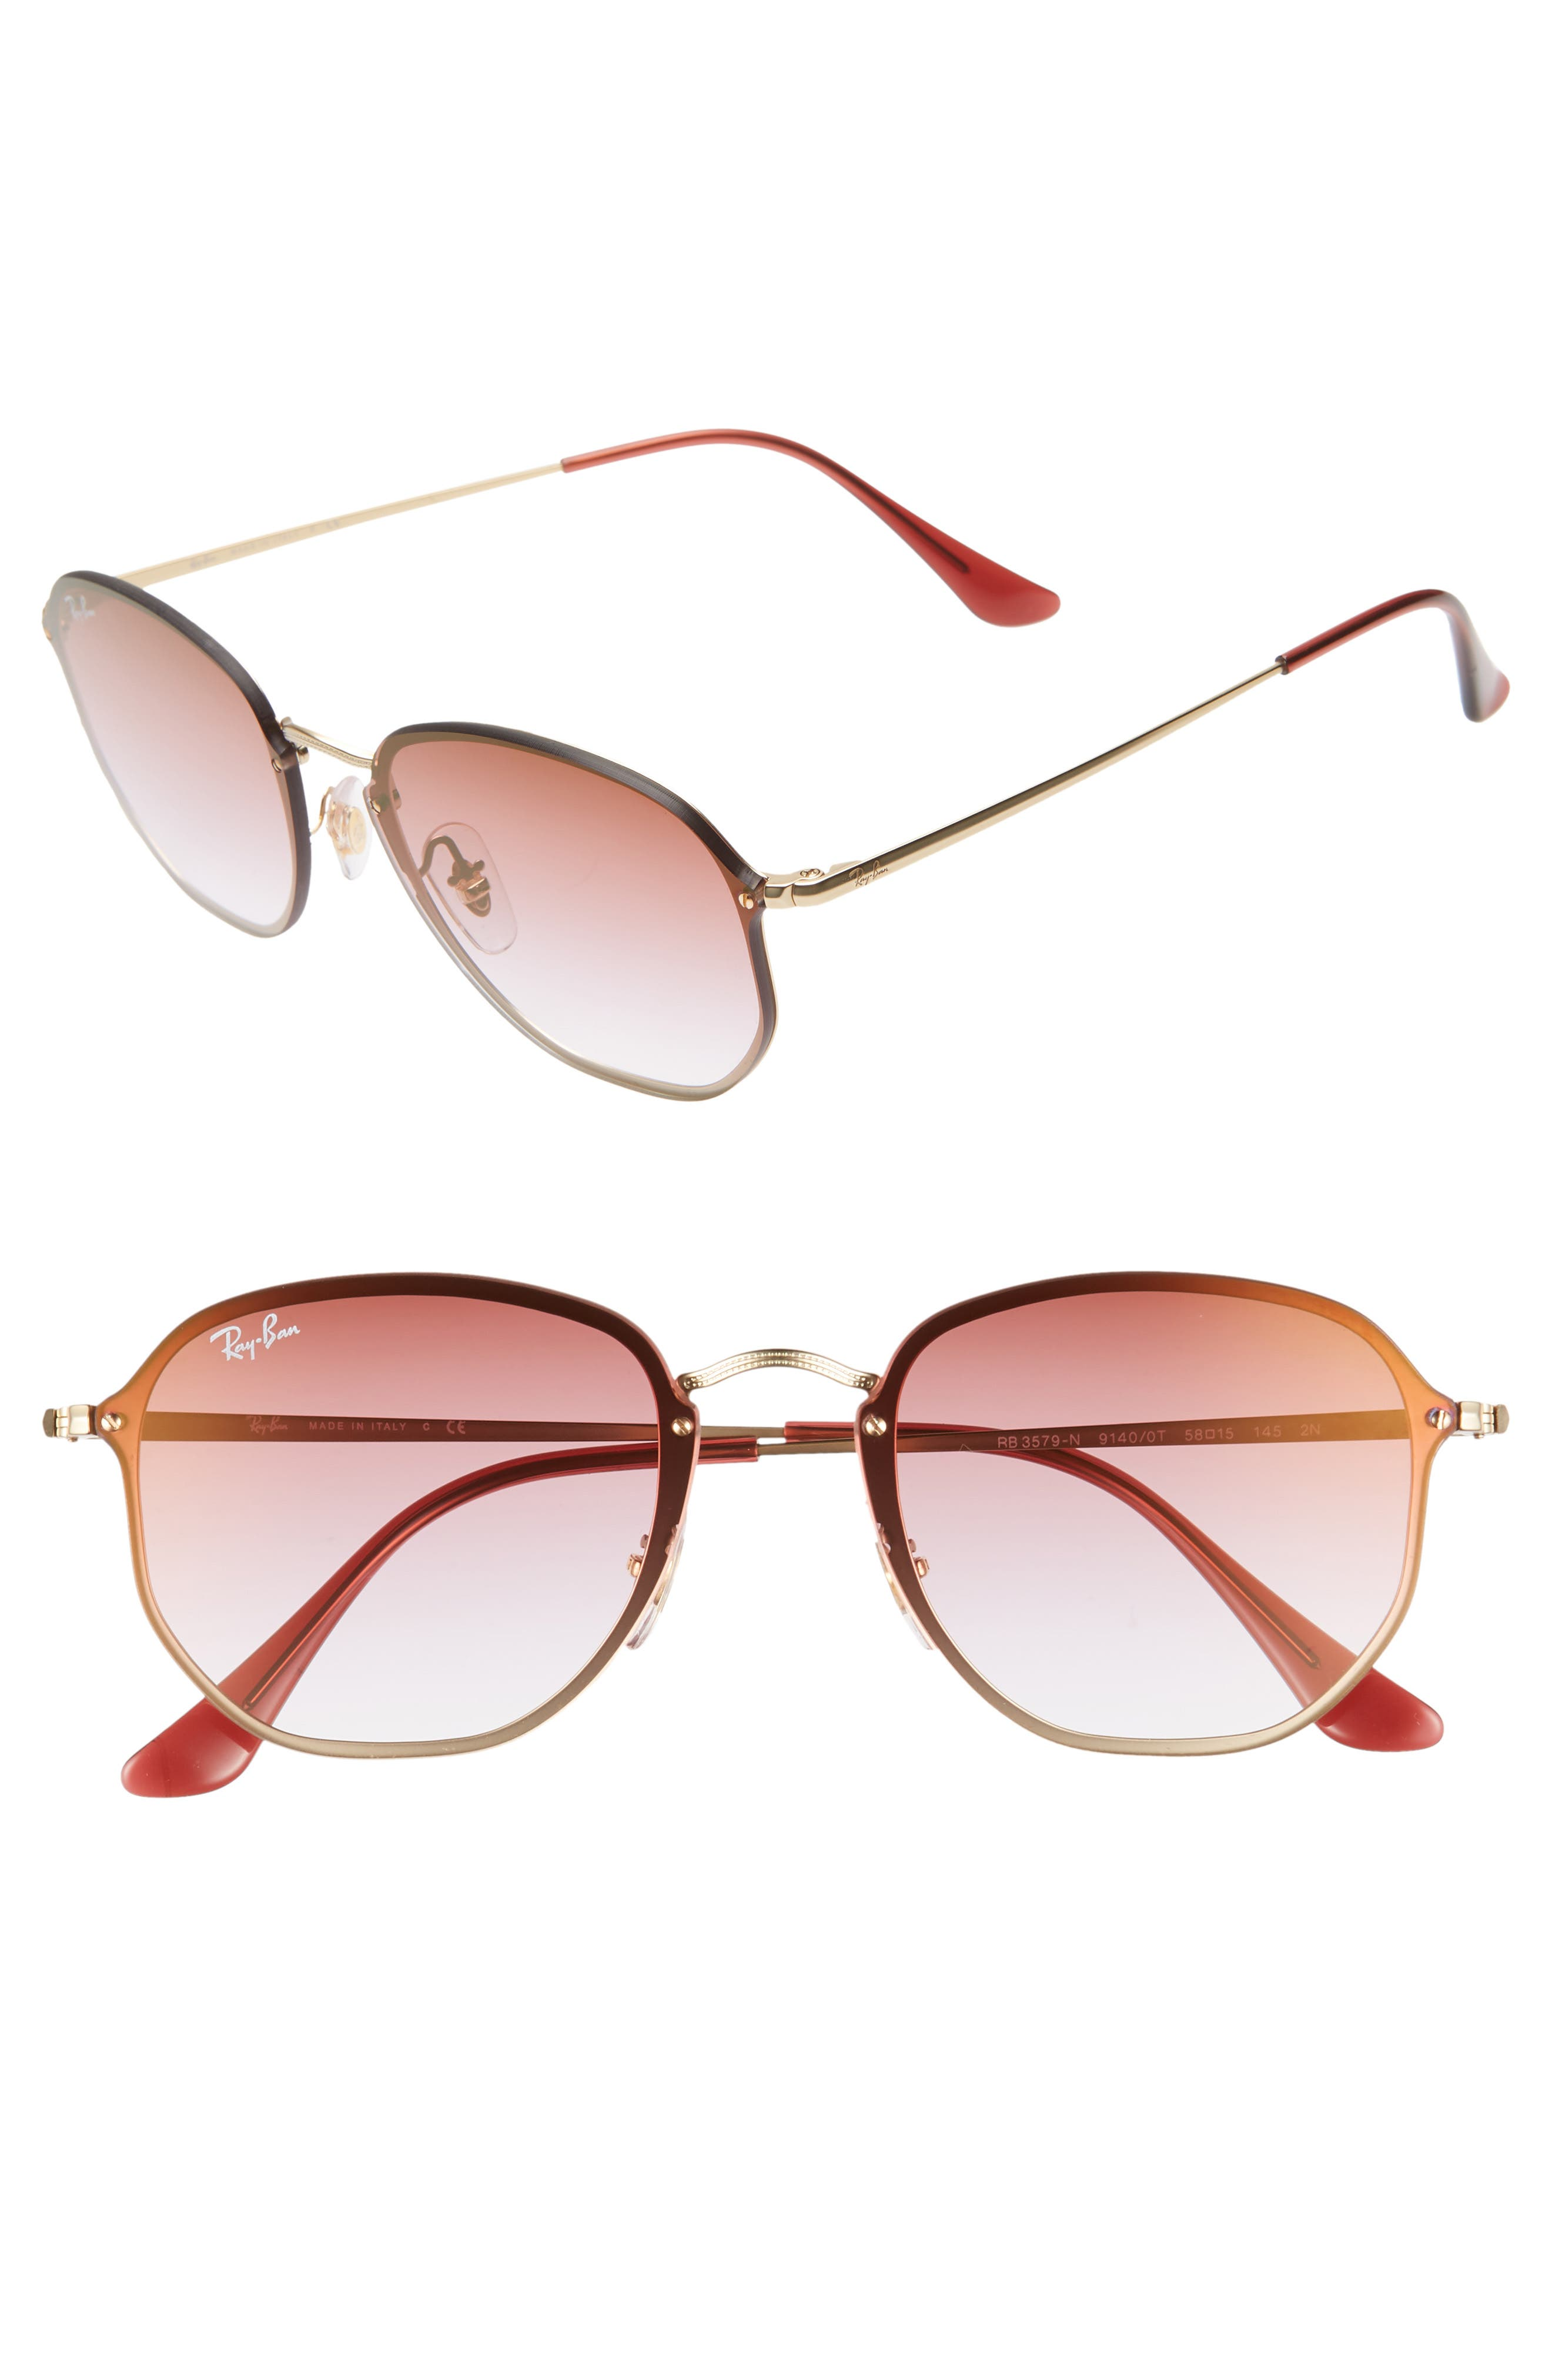 58mm Round Sunglasses,                         Main,                         color, GOLD/ BROWN PINK GRADIENT